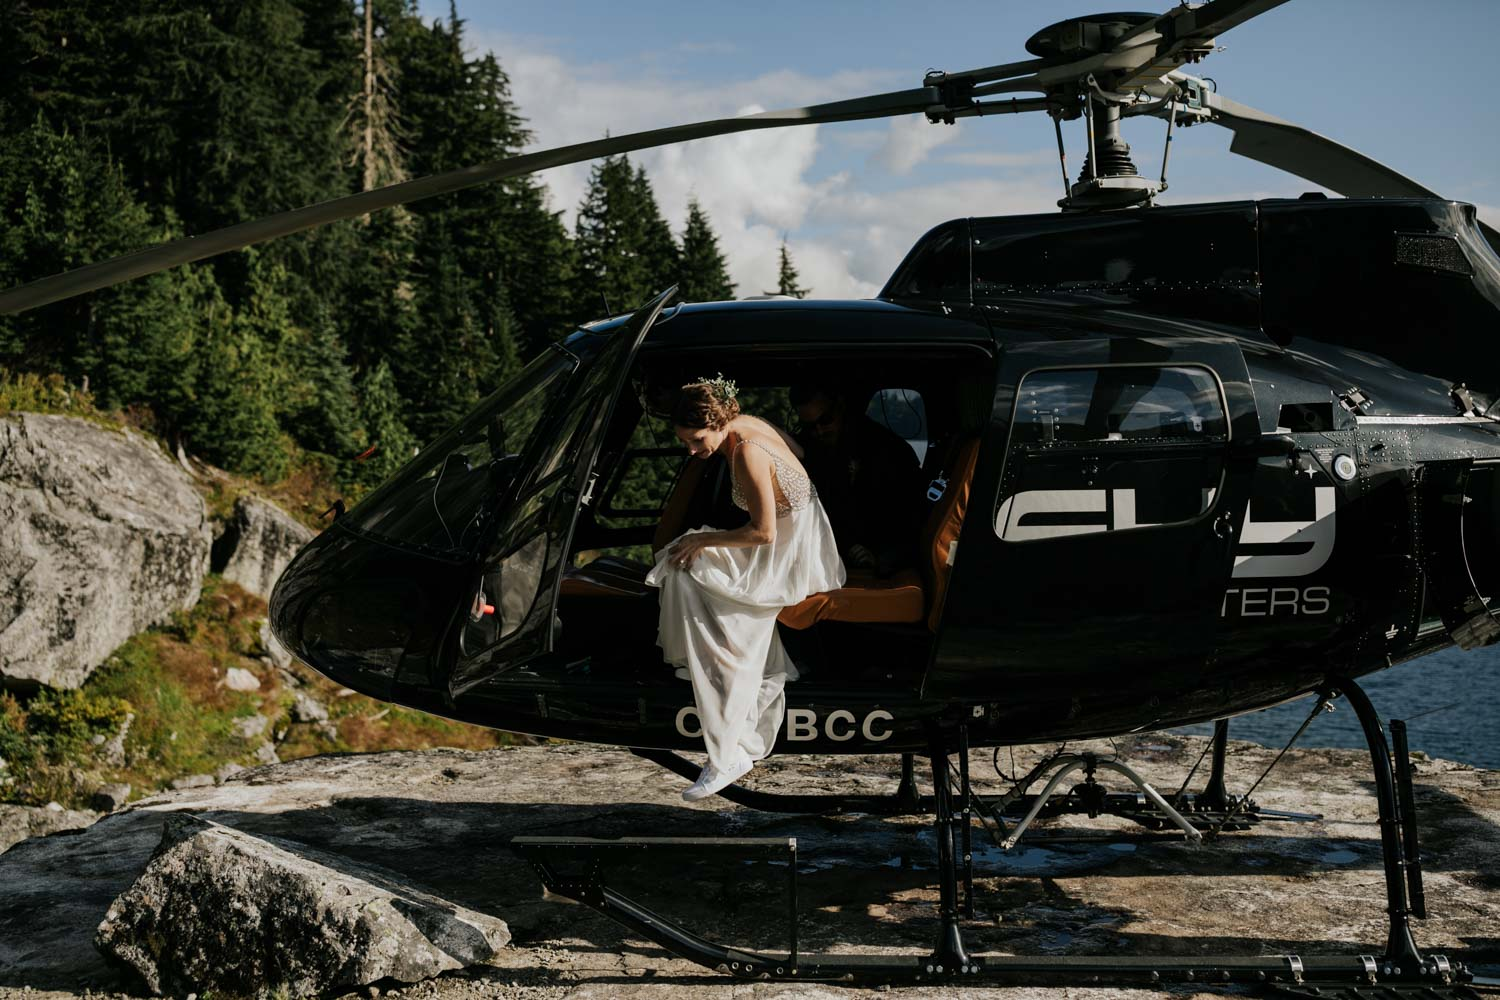 Sky helicopter elopement location in Vancouver near Pitt Meadows